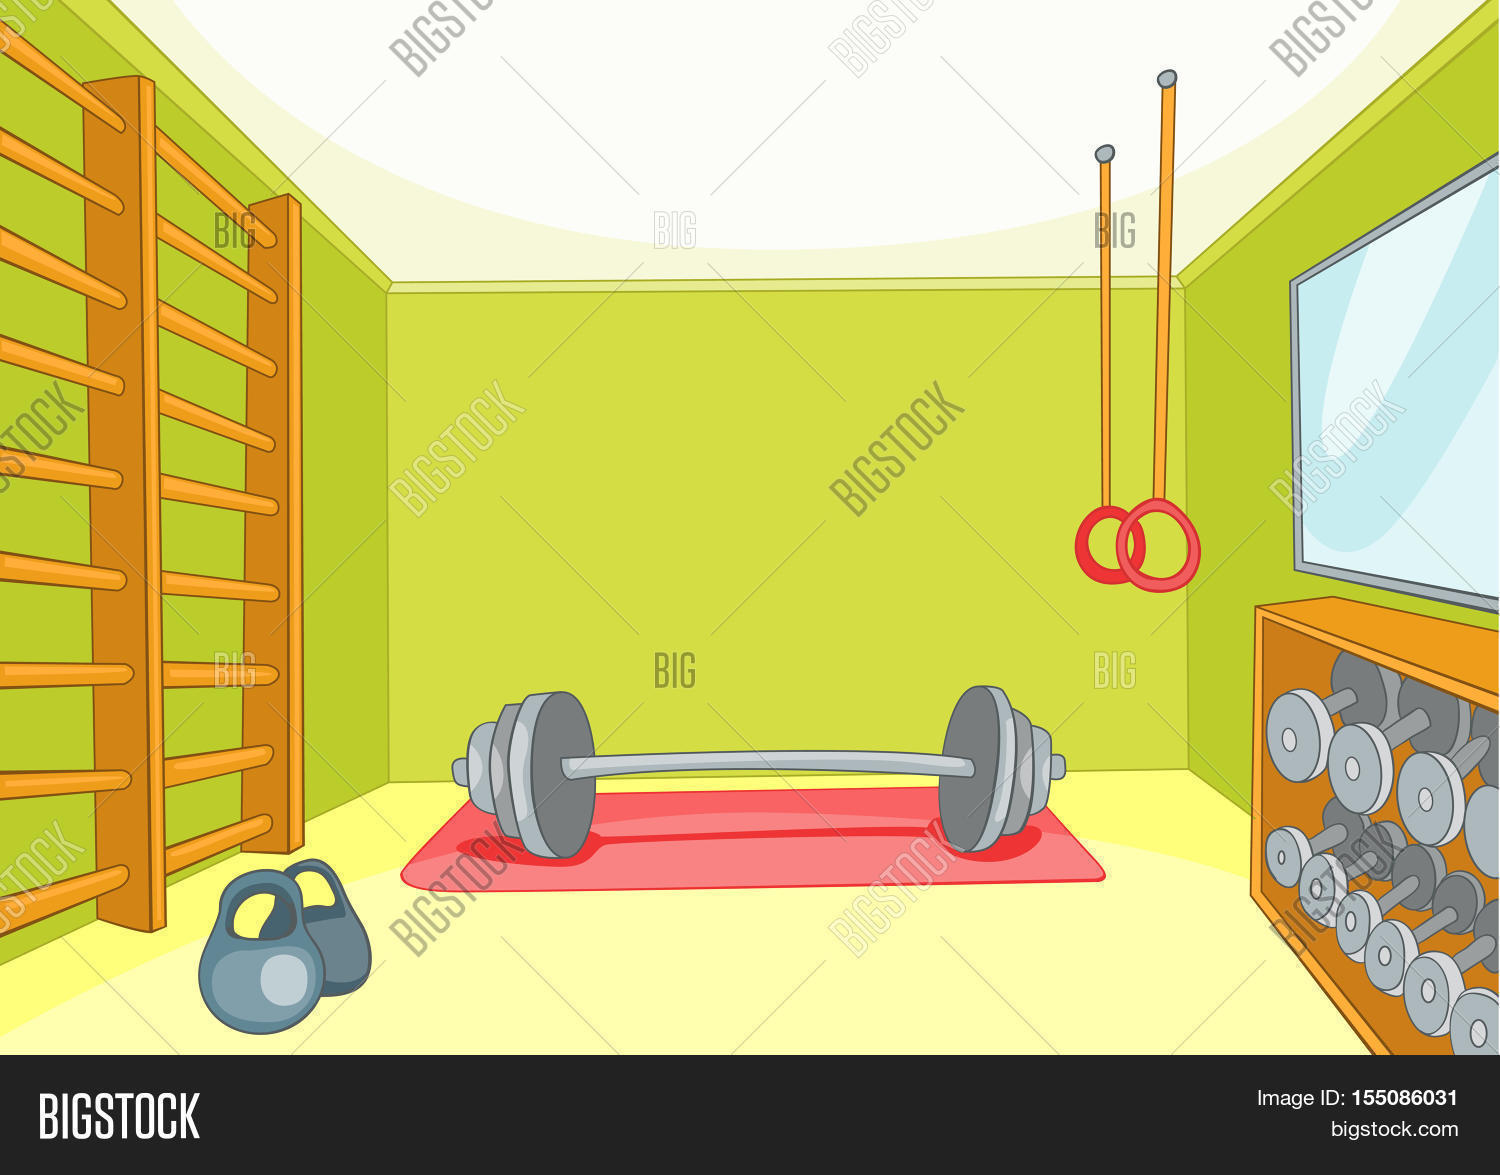 hand drawn cartoon gym room image photo bigstock. Black Bedroom Furniture Sets. Home Design Ideas